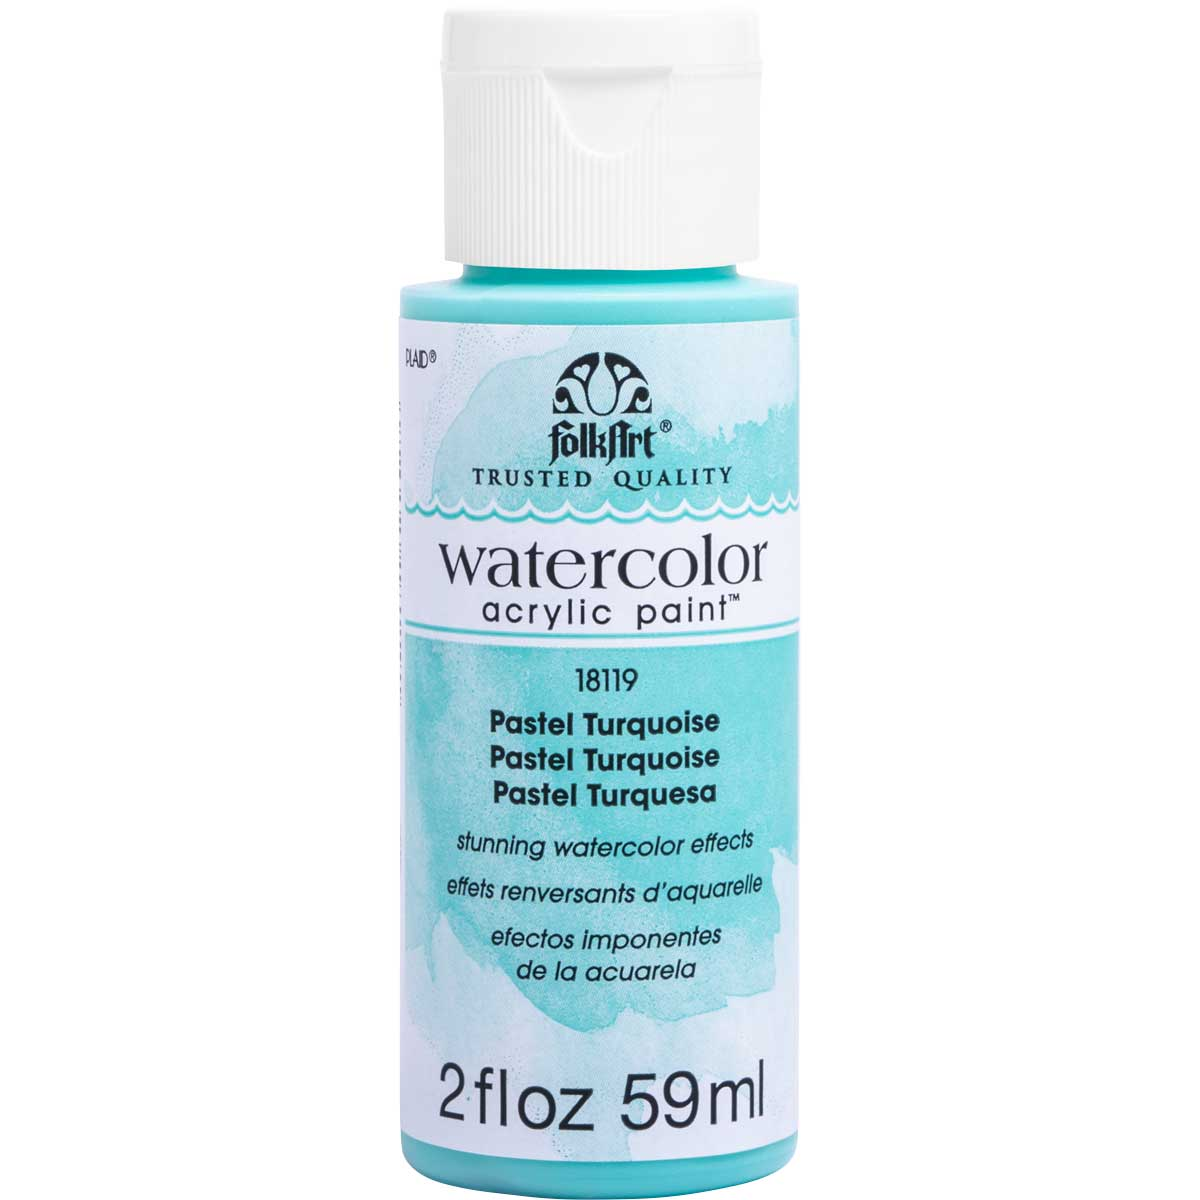 FolkArt ® Watercolor Acrylic Paint™ - Pastel Turquoise, 2 oz.